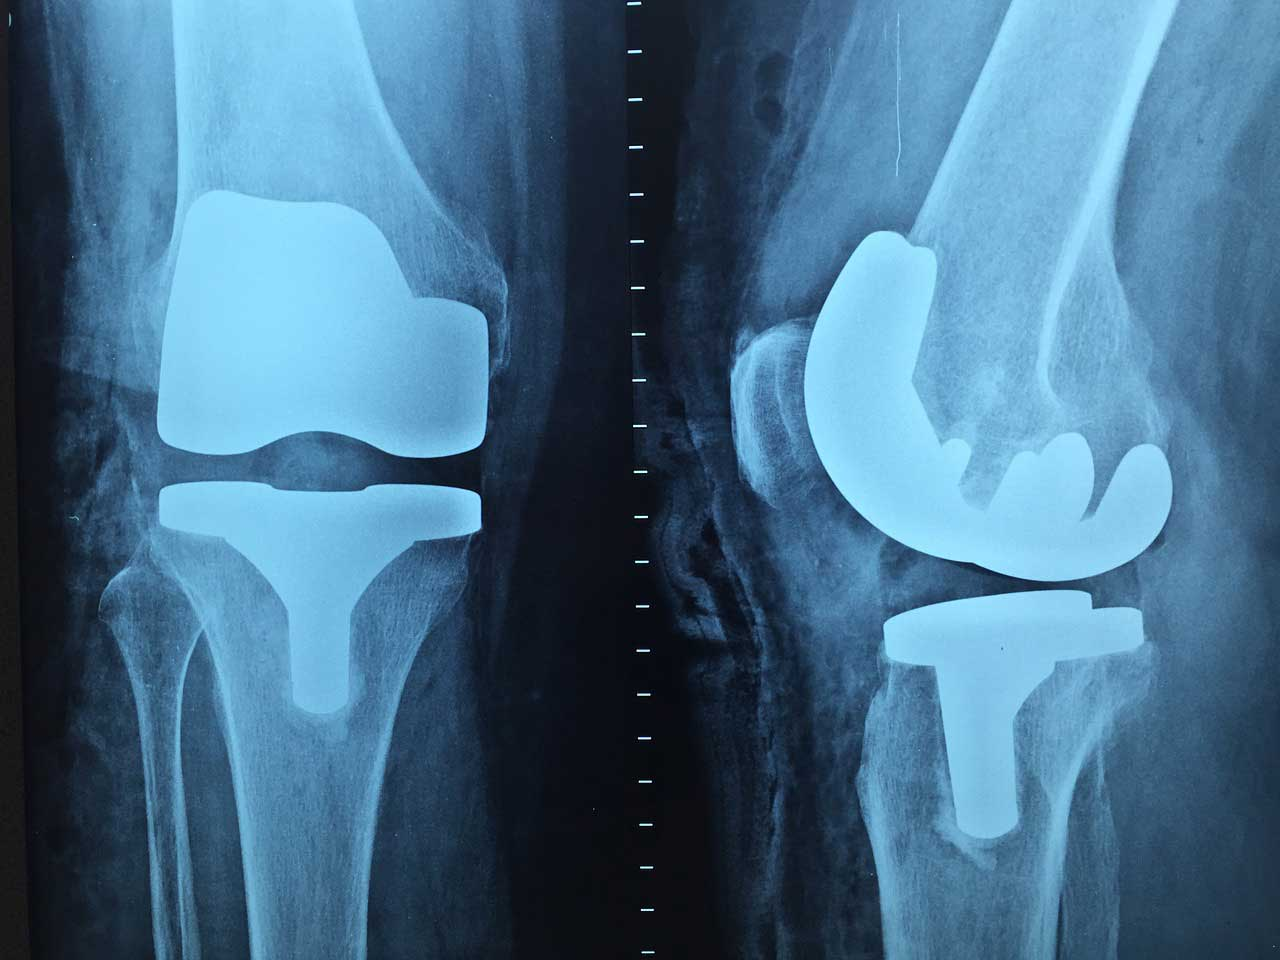 Photo of Knie knirscht- Knorpelschaden im Kniegelenk